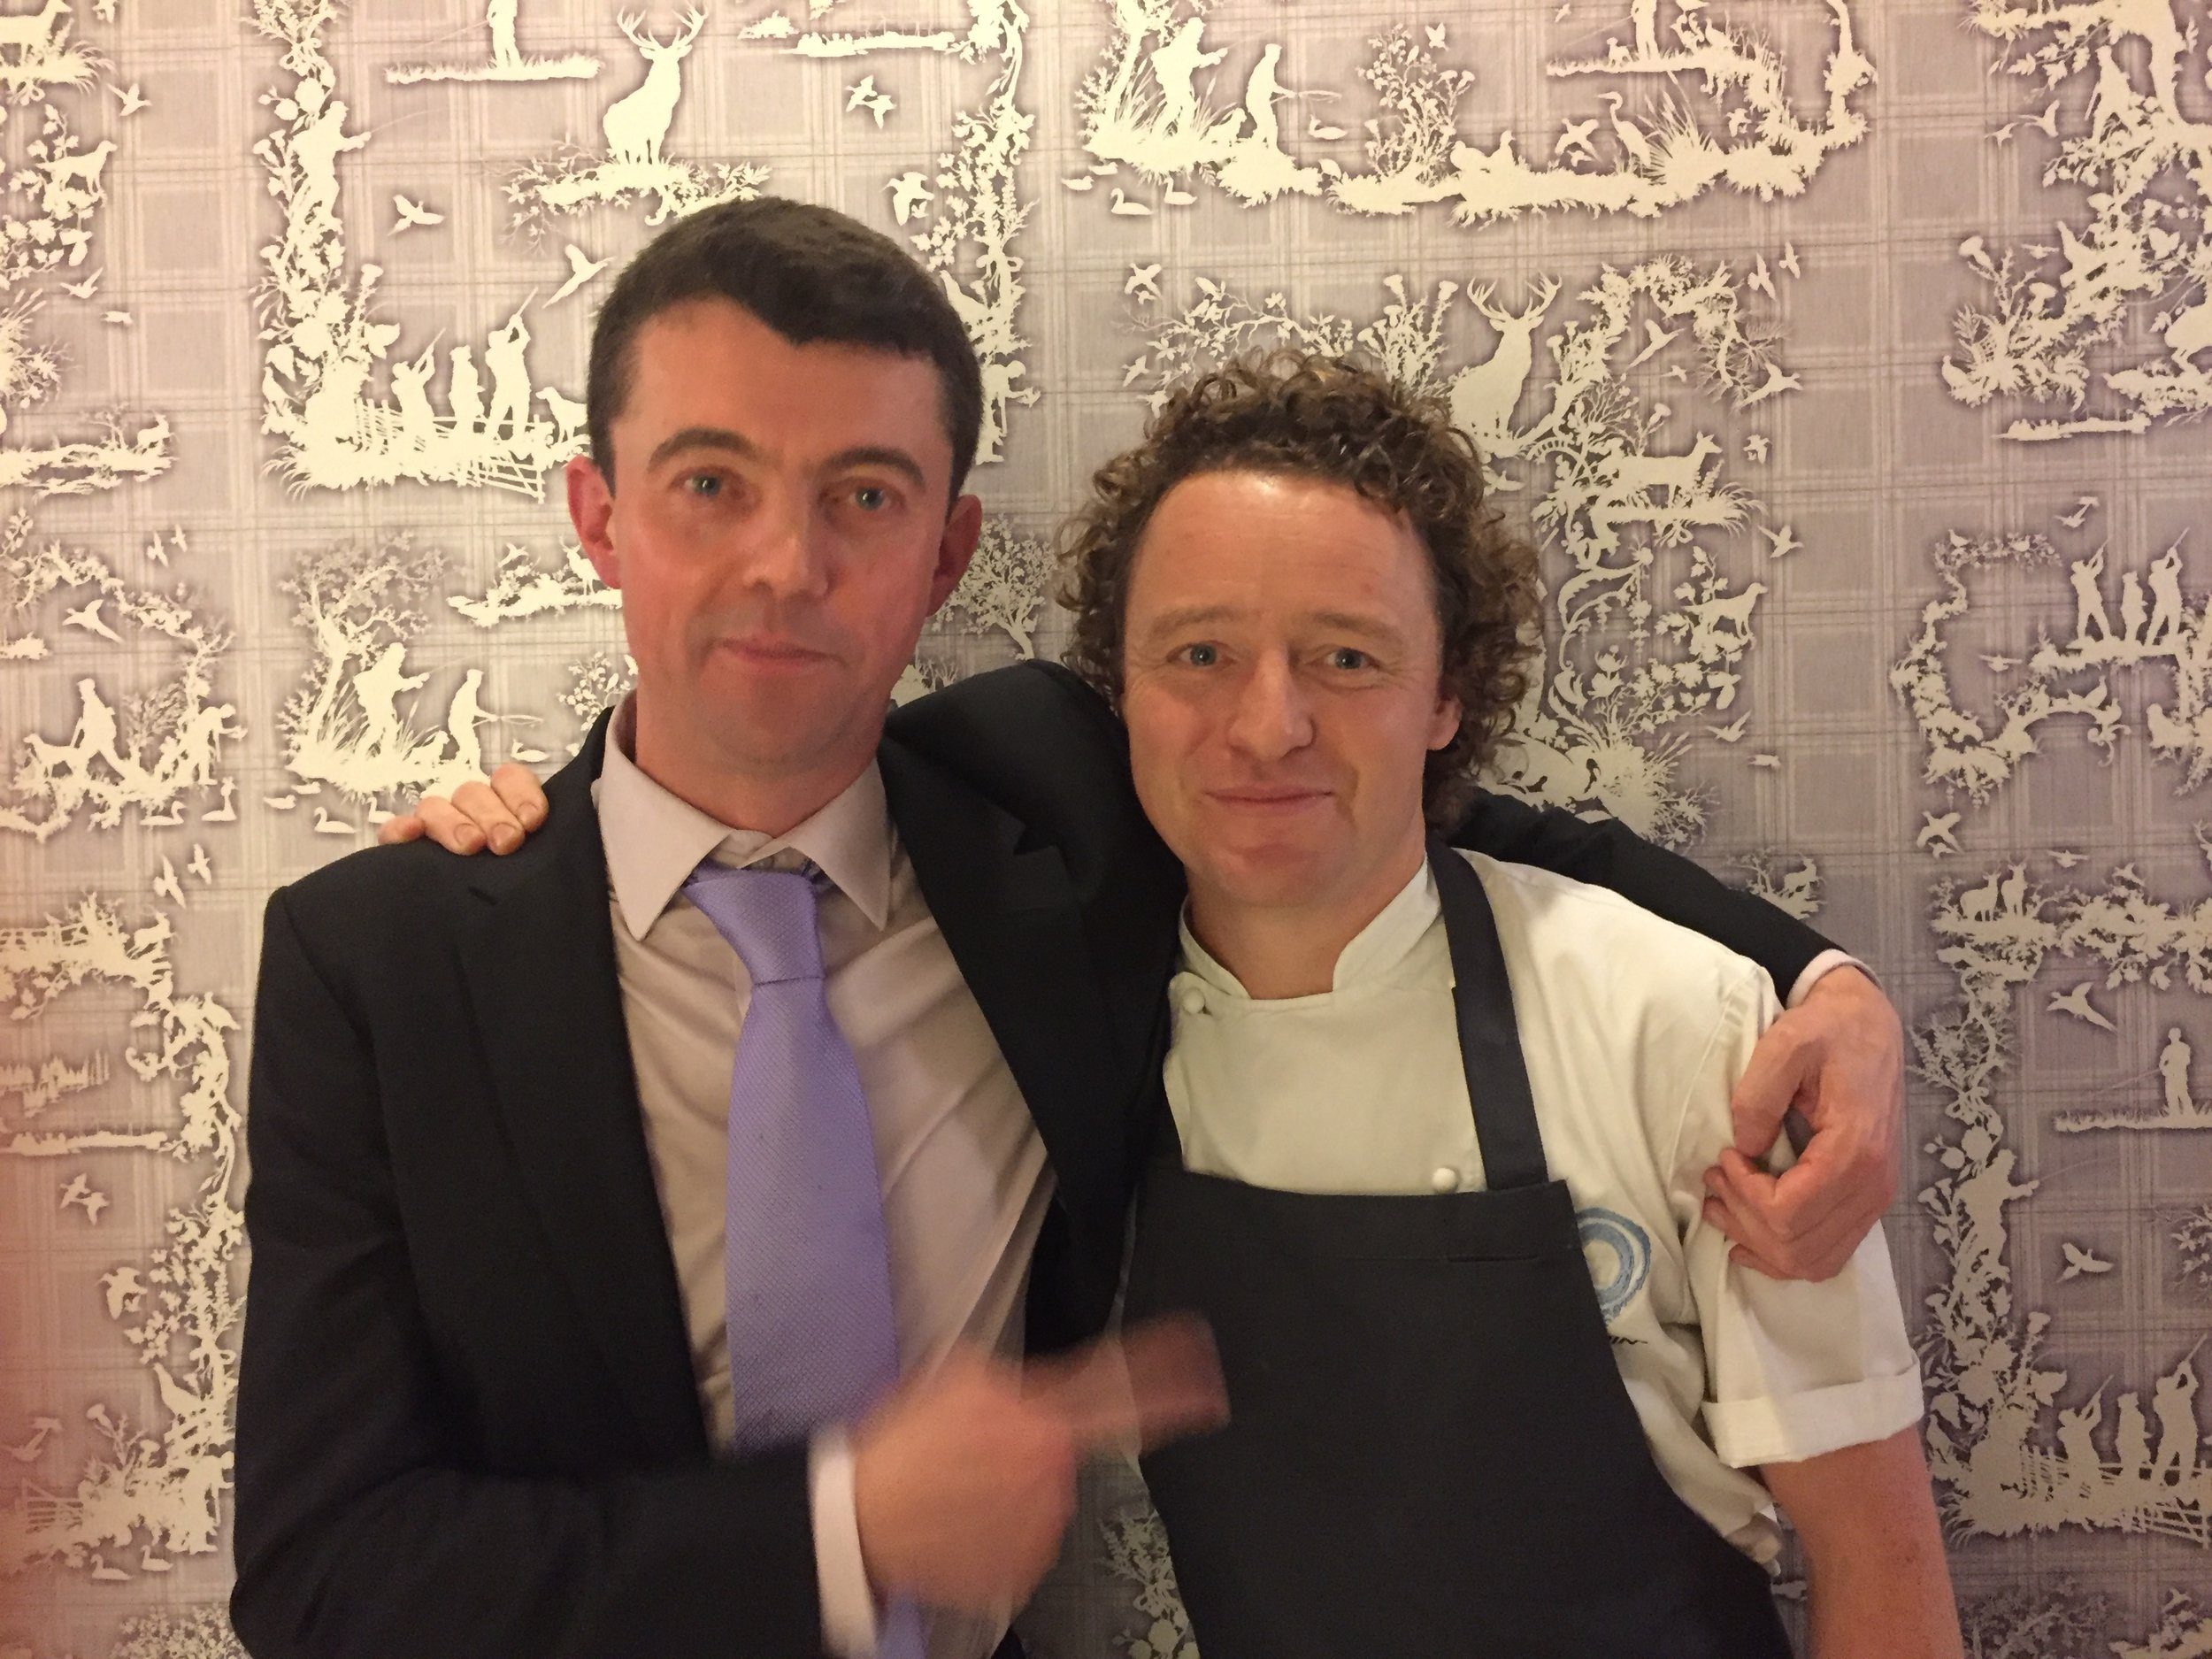 Tom with chocolatier  William Curley , who created special chocolates for #KitchinAtHarrods pop-up. Check the  Timorous Beasties  wallpaper, recreating  The Kitchin